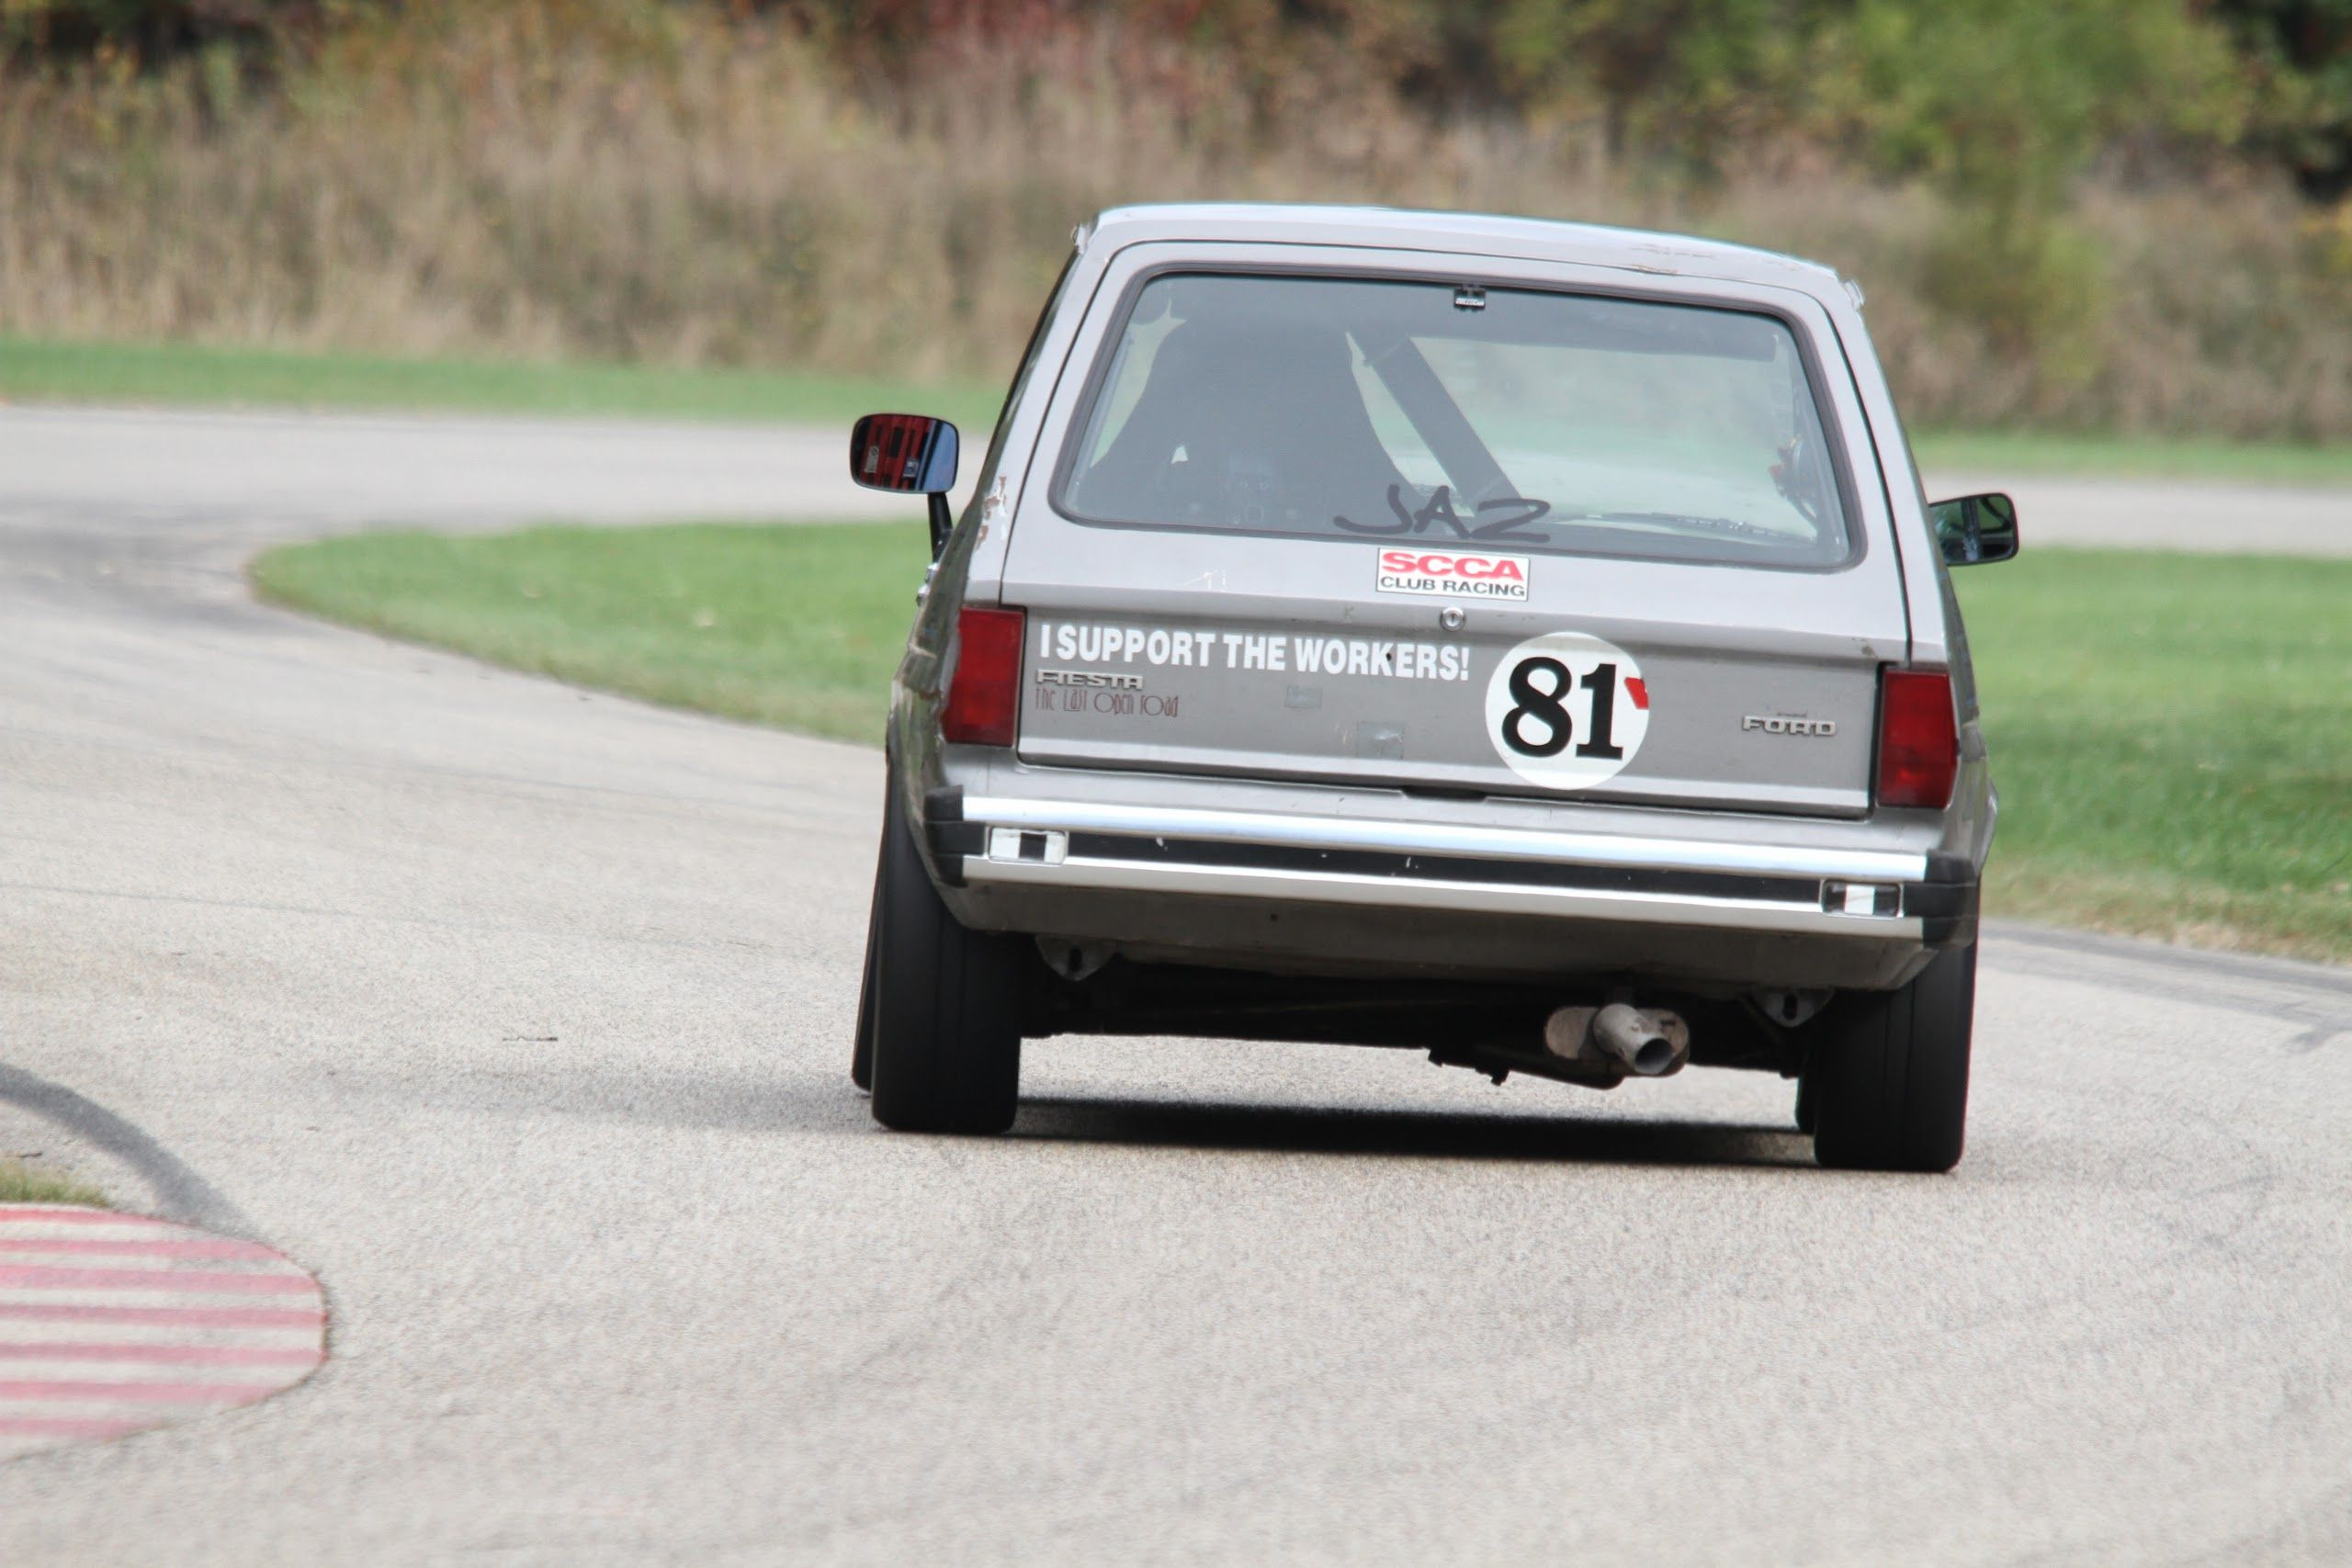 ford fiesta mk1 classic - photo #14